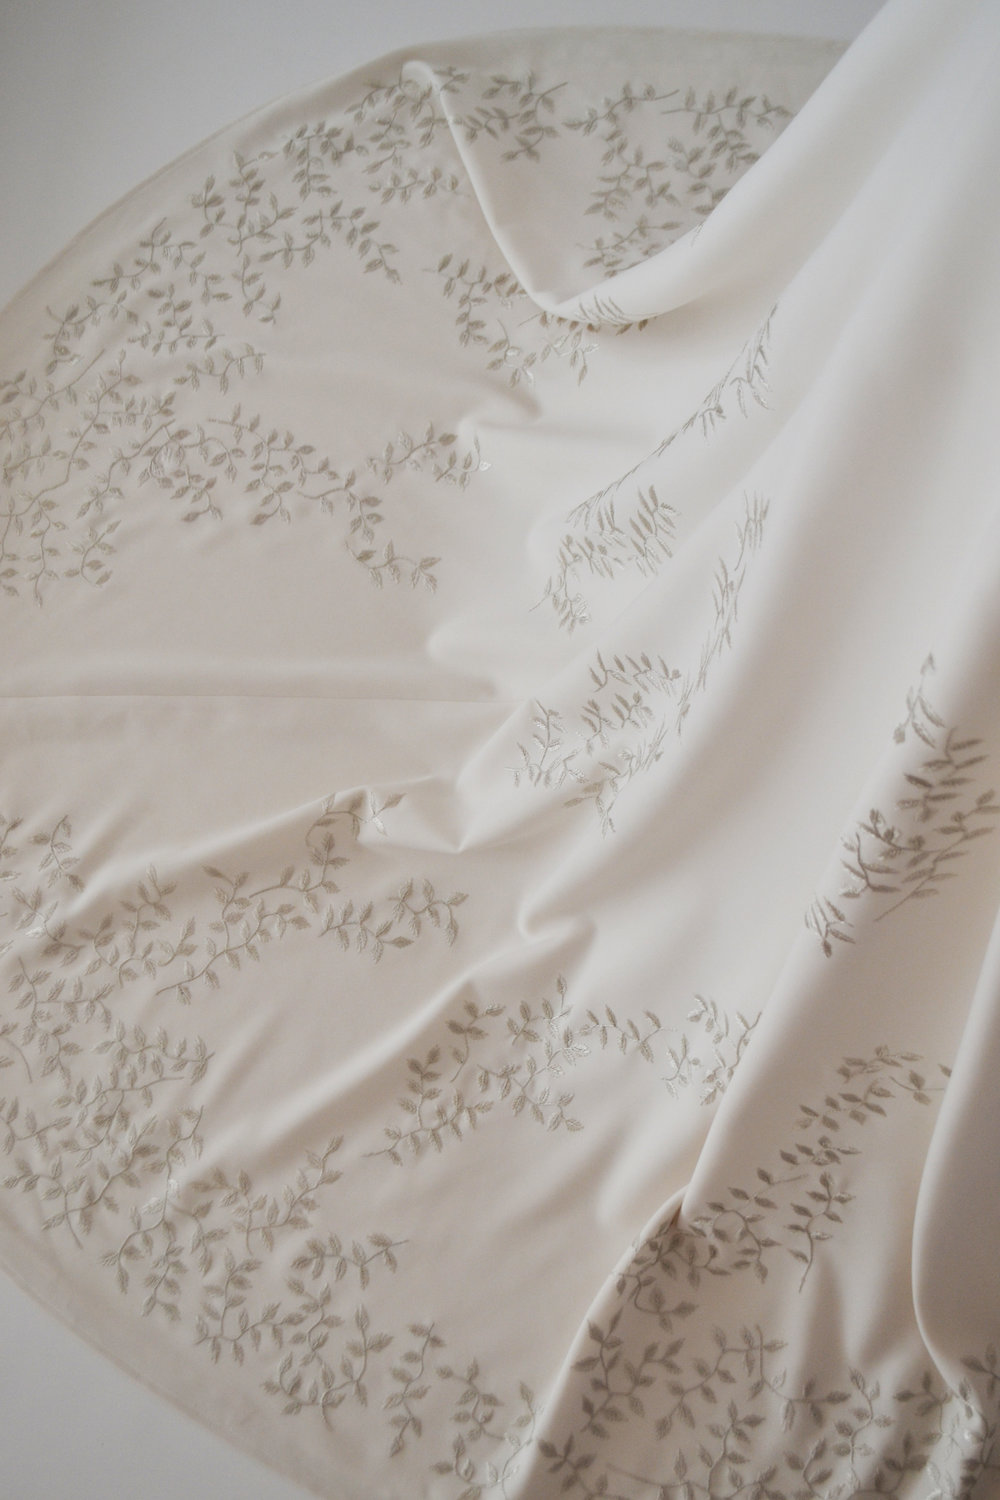 wedding dress embroidery.JPG